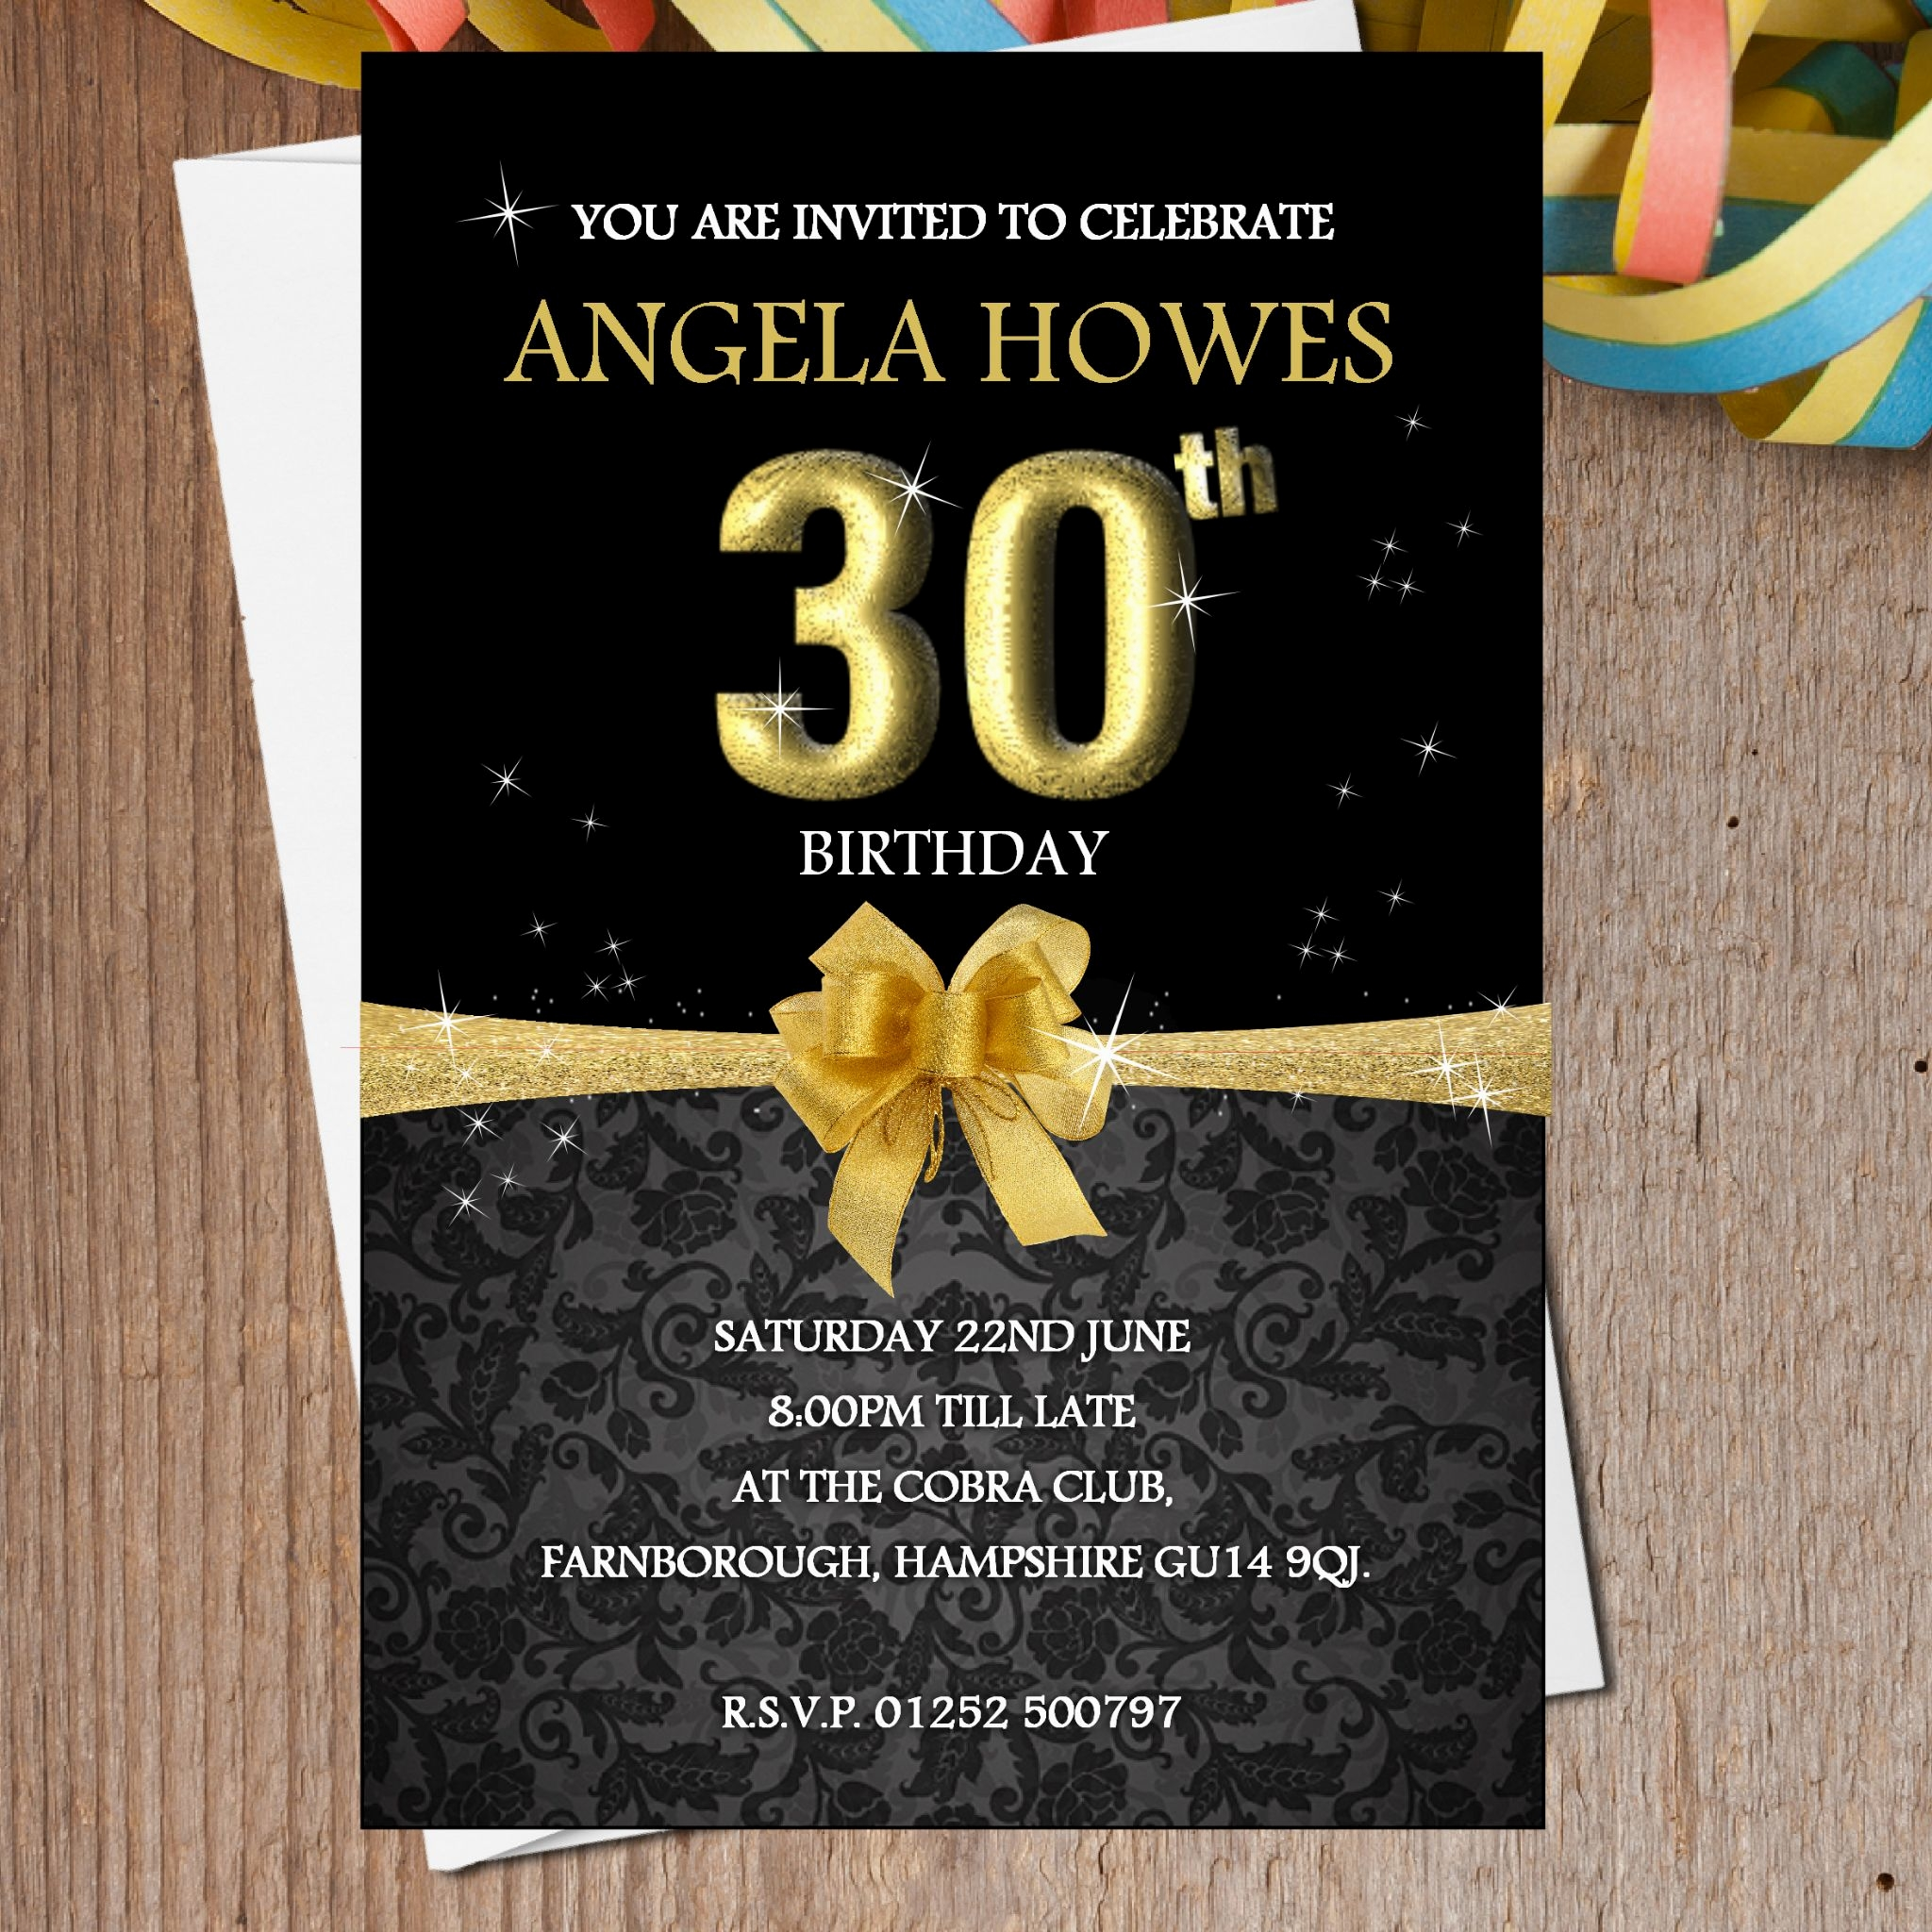 18th birthday invitation cards printable ; 18th-birthday-invitation-card-are-beautiful-design-for-elegant-invitations-design